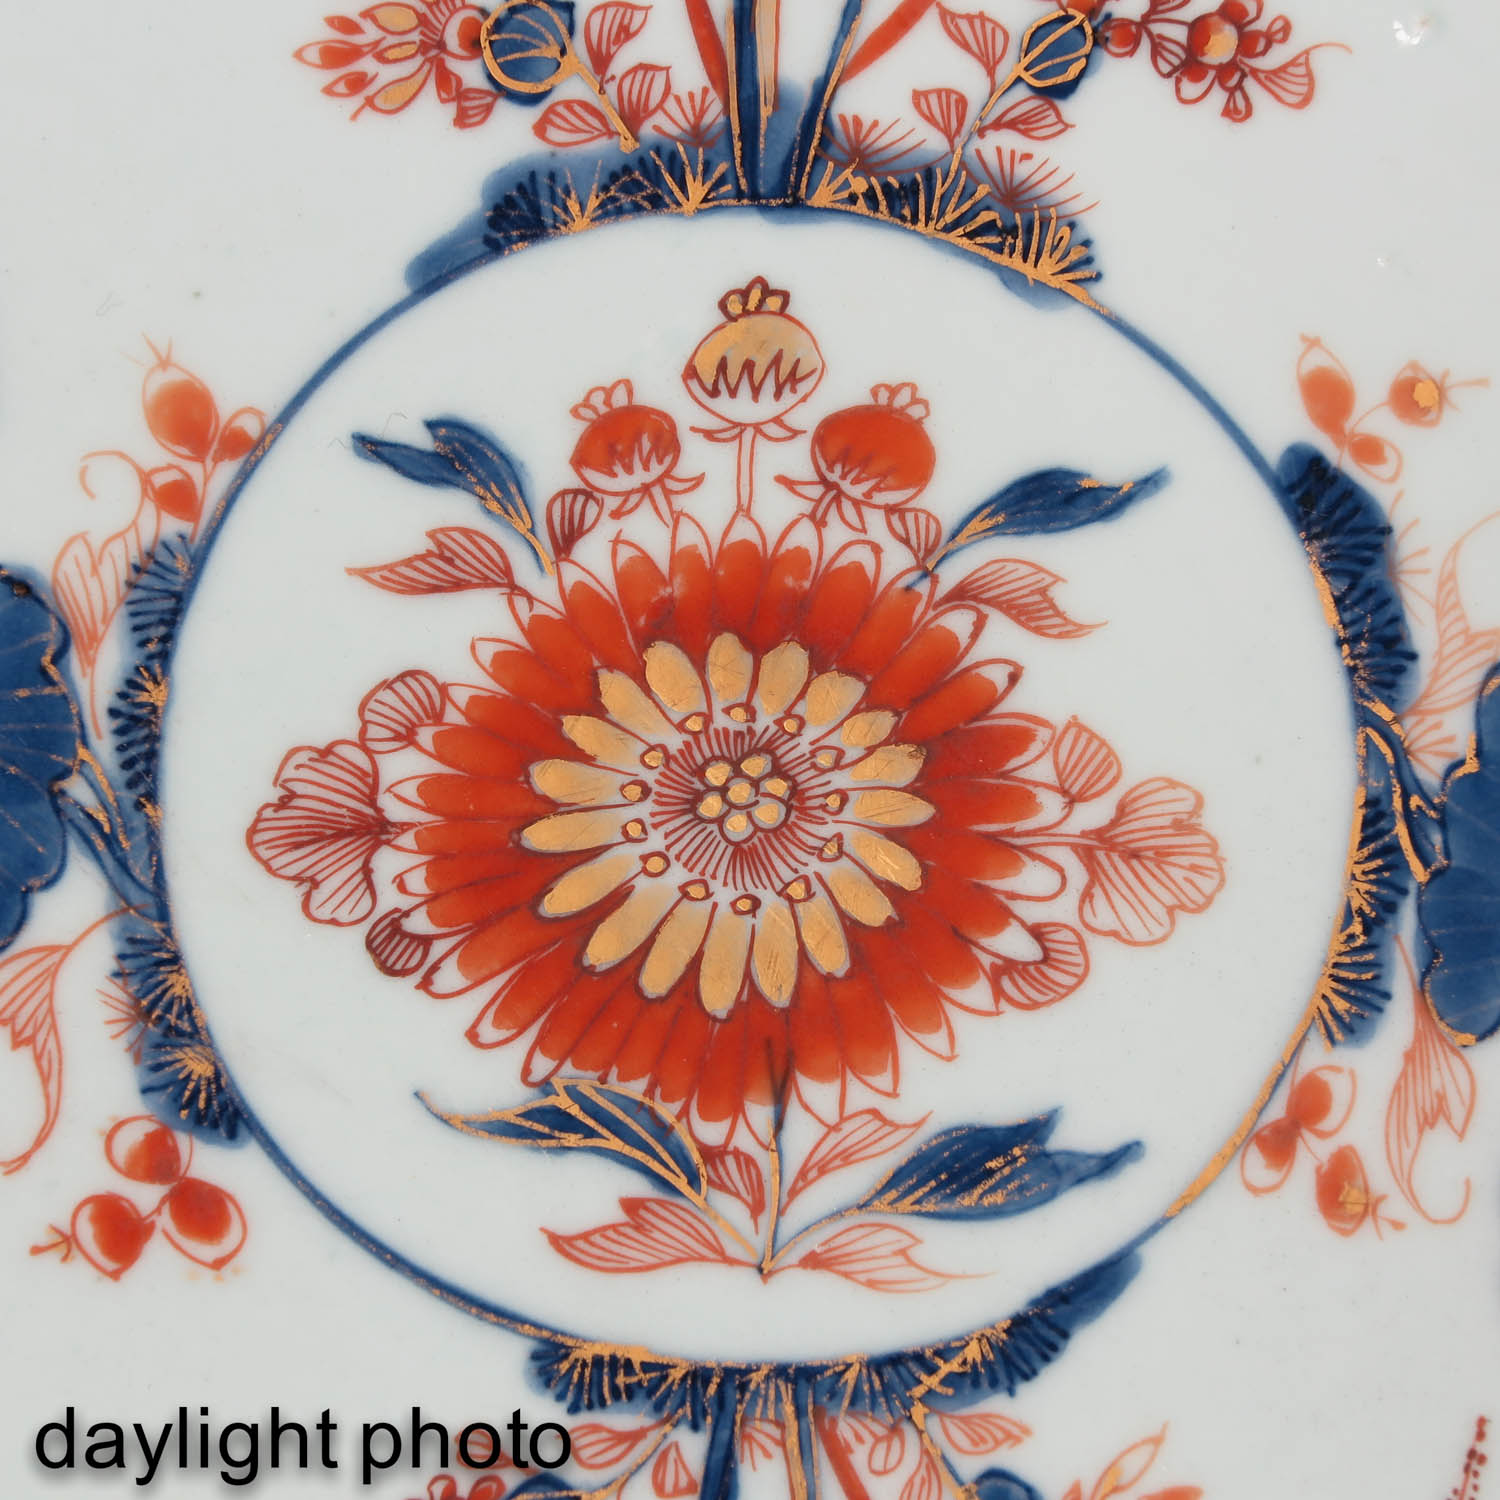 A Large Imari Charger - Image 7 of 7